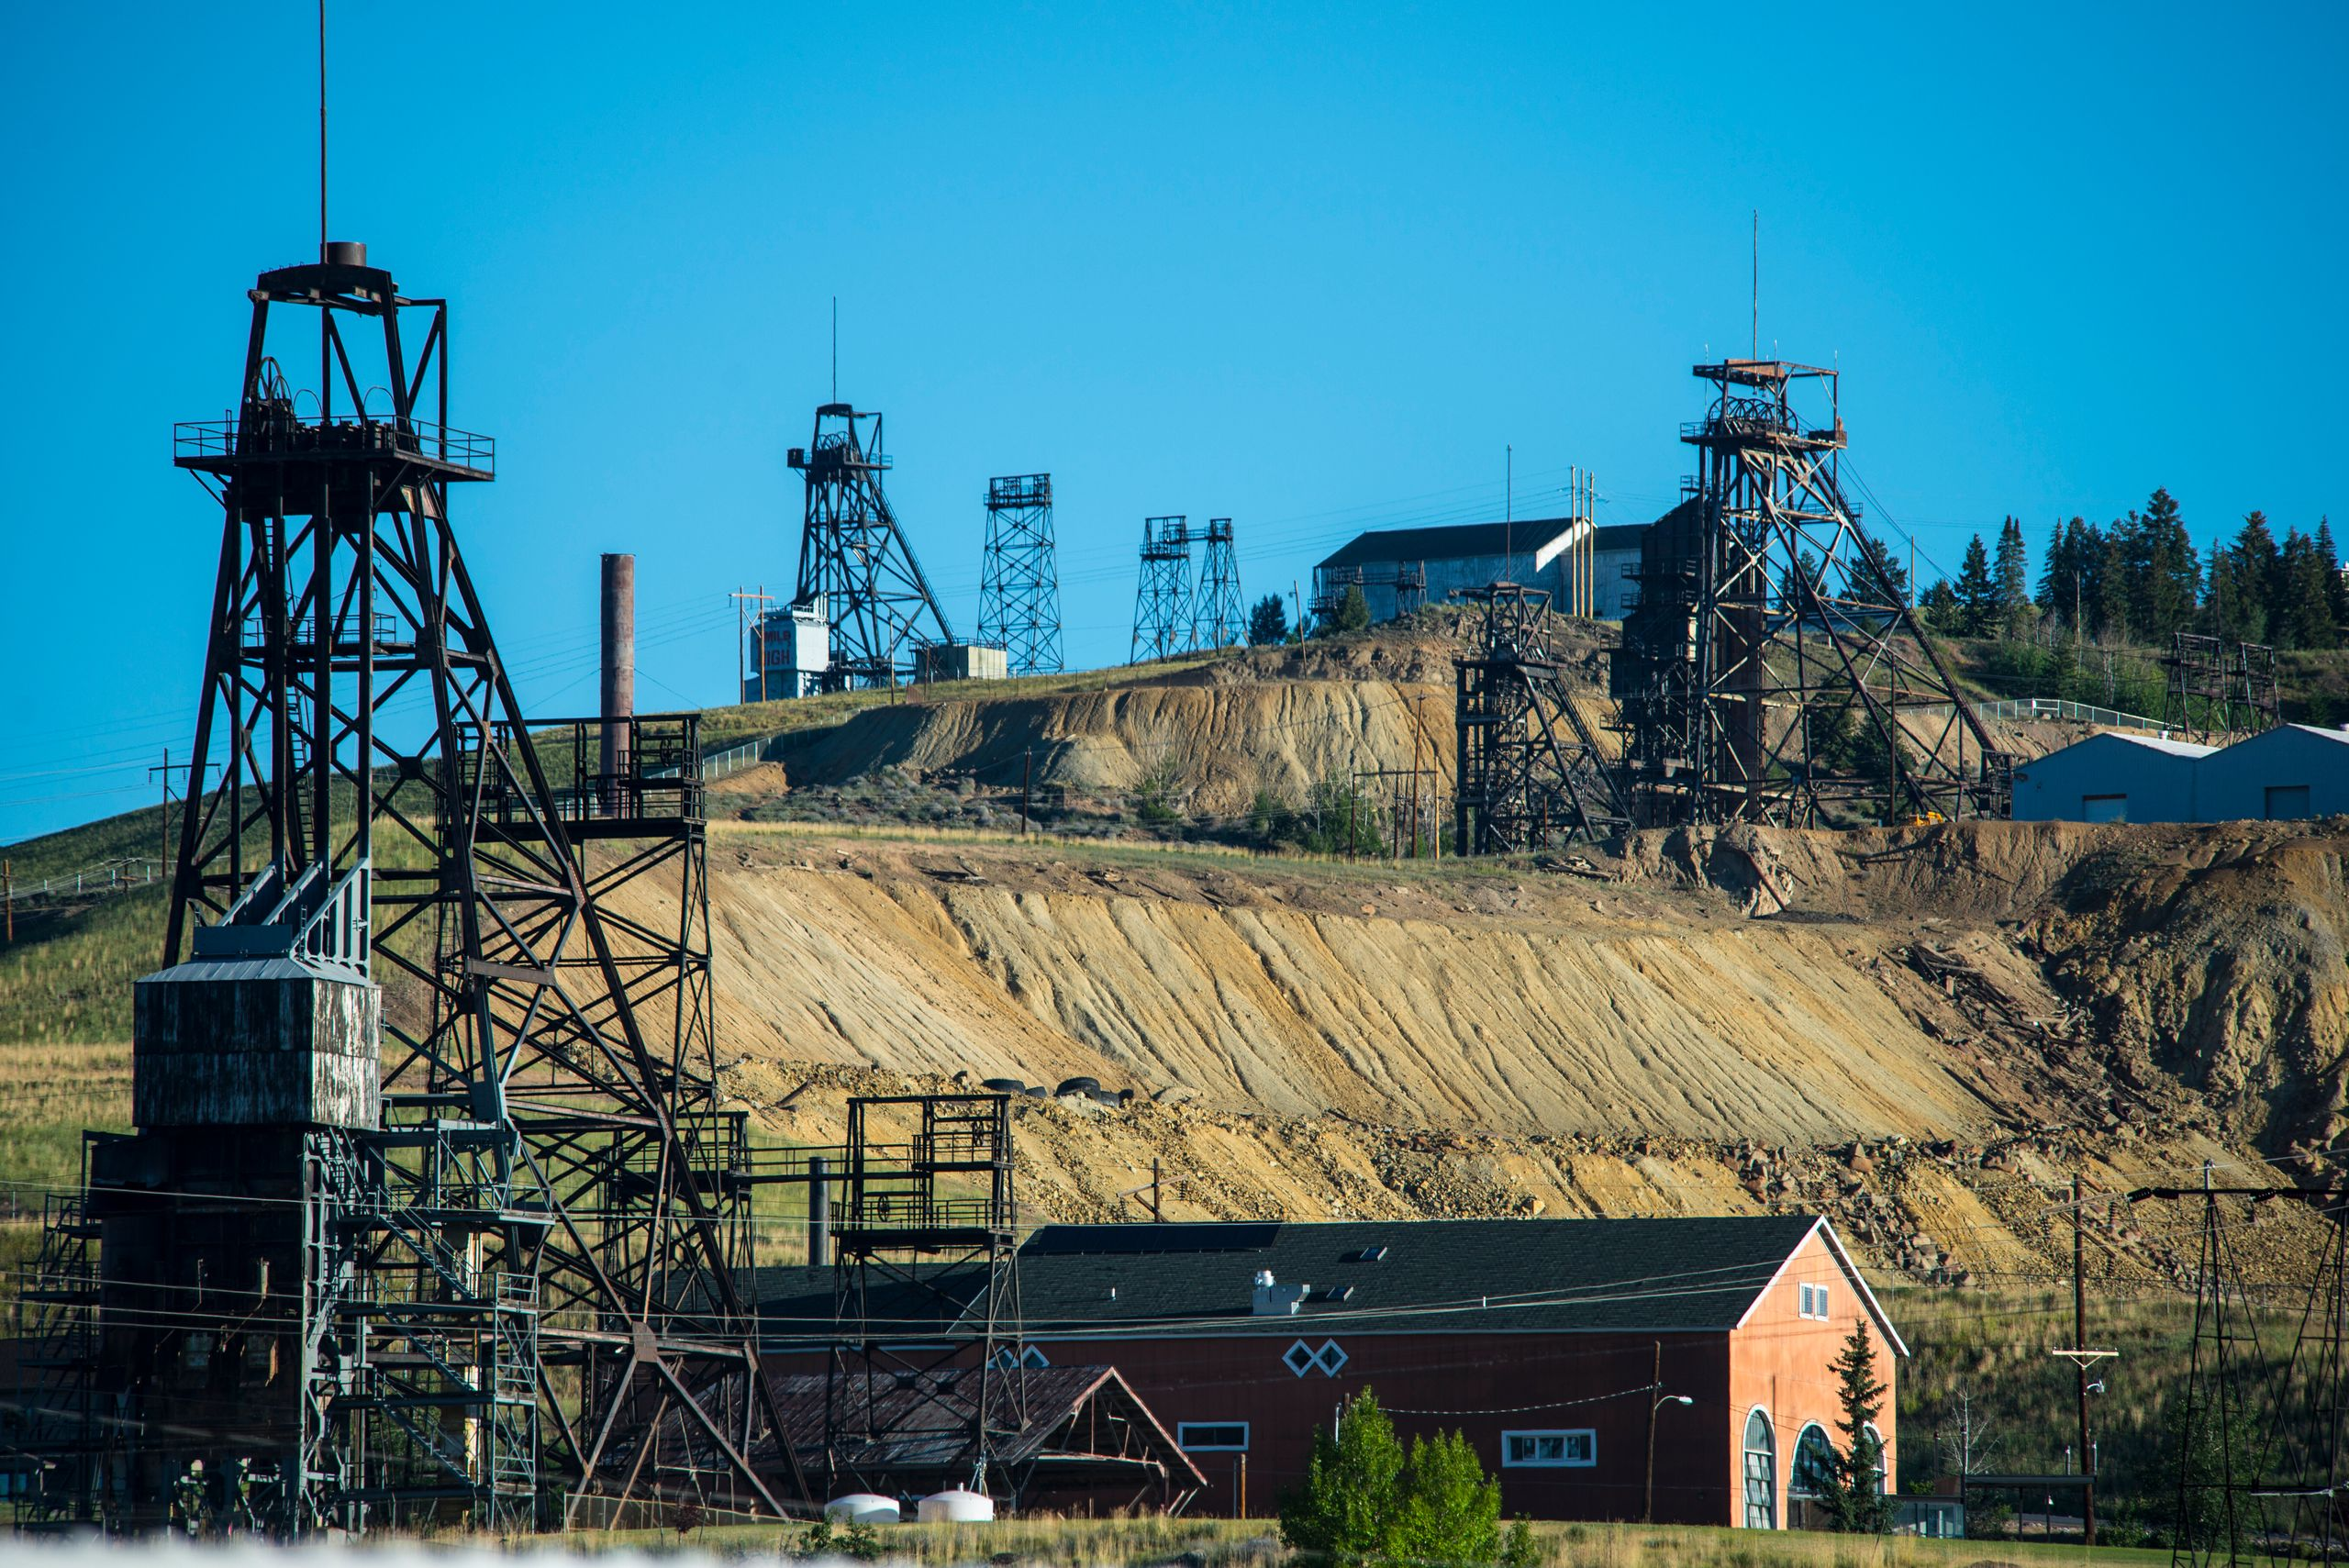 Old copper mine shaft headframes on a hill above Butte, Montana.